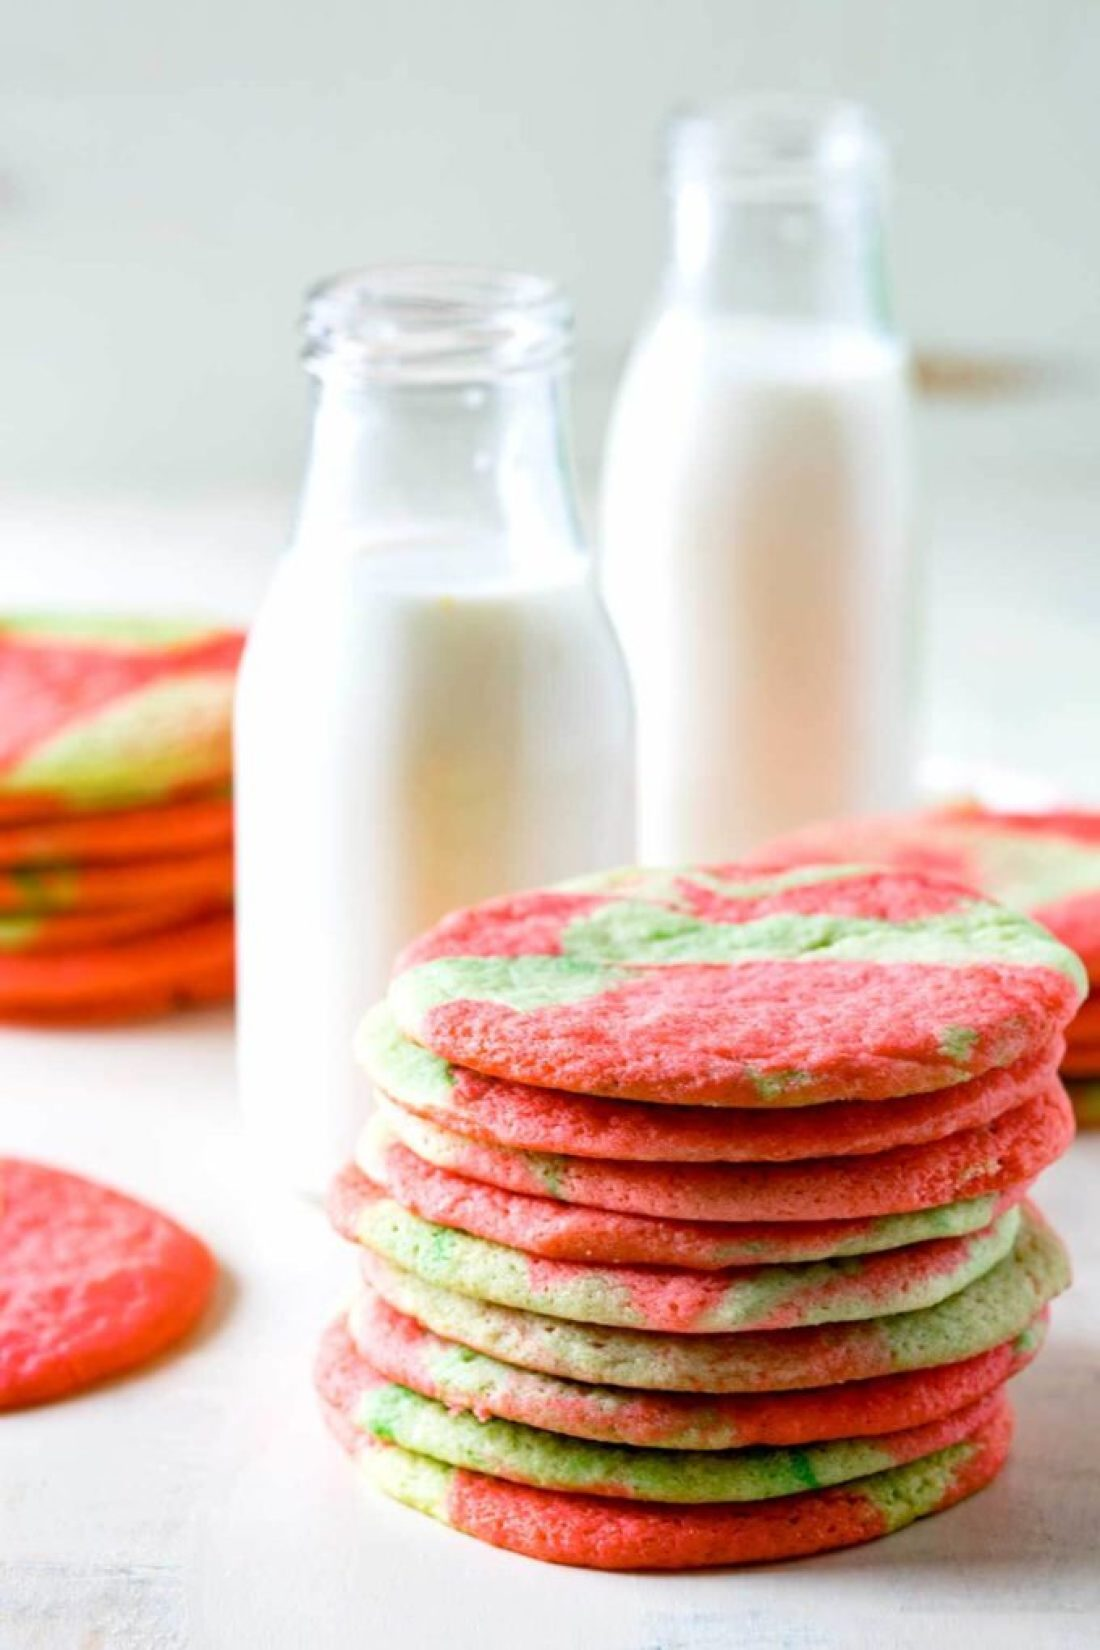 Tie Dye Sugar Cookies are a festive twist on a classic sugar cookie recipe